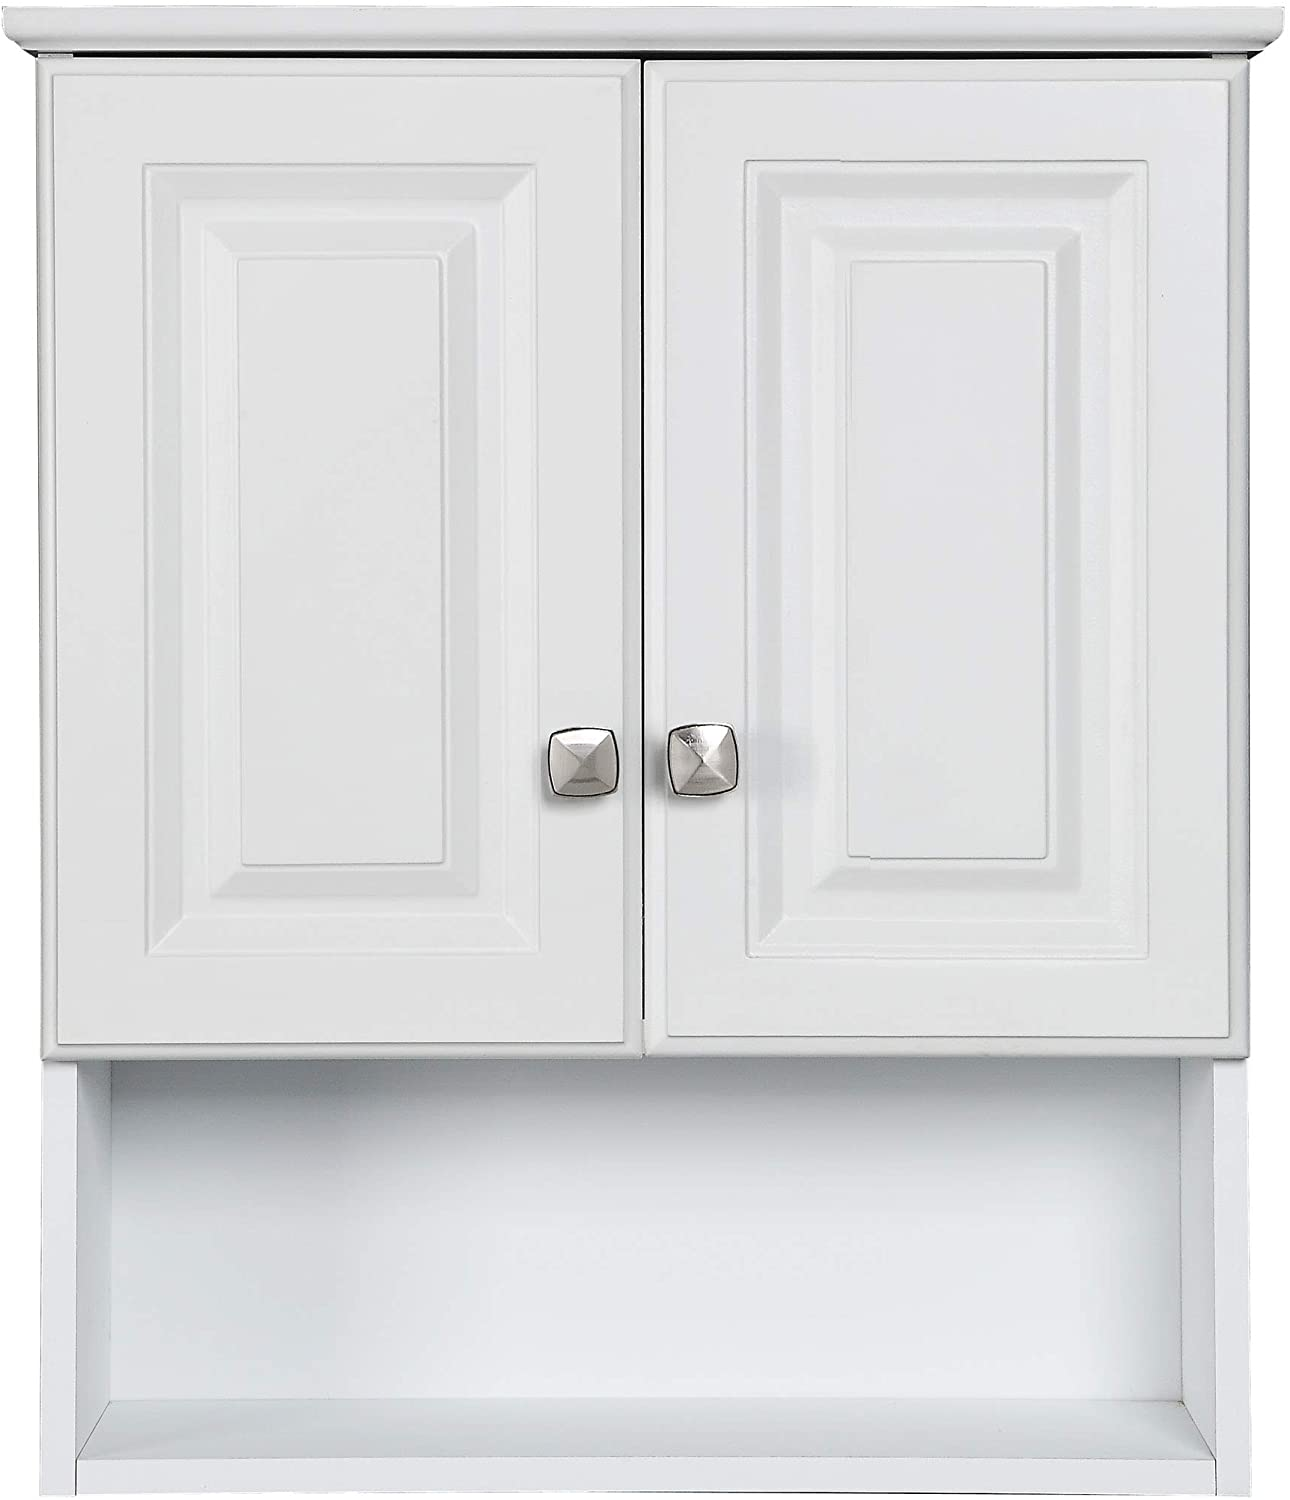 Design House 531715 Wyndham White Semi Gloss Bathroom Wall Cabinet With 2 Doors And 1 Shelf 22 Inches Wide By 26 Inches Tall By 8 Inches Deep Home Improvement